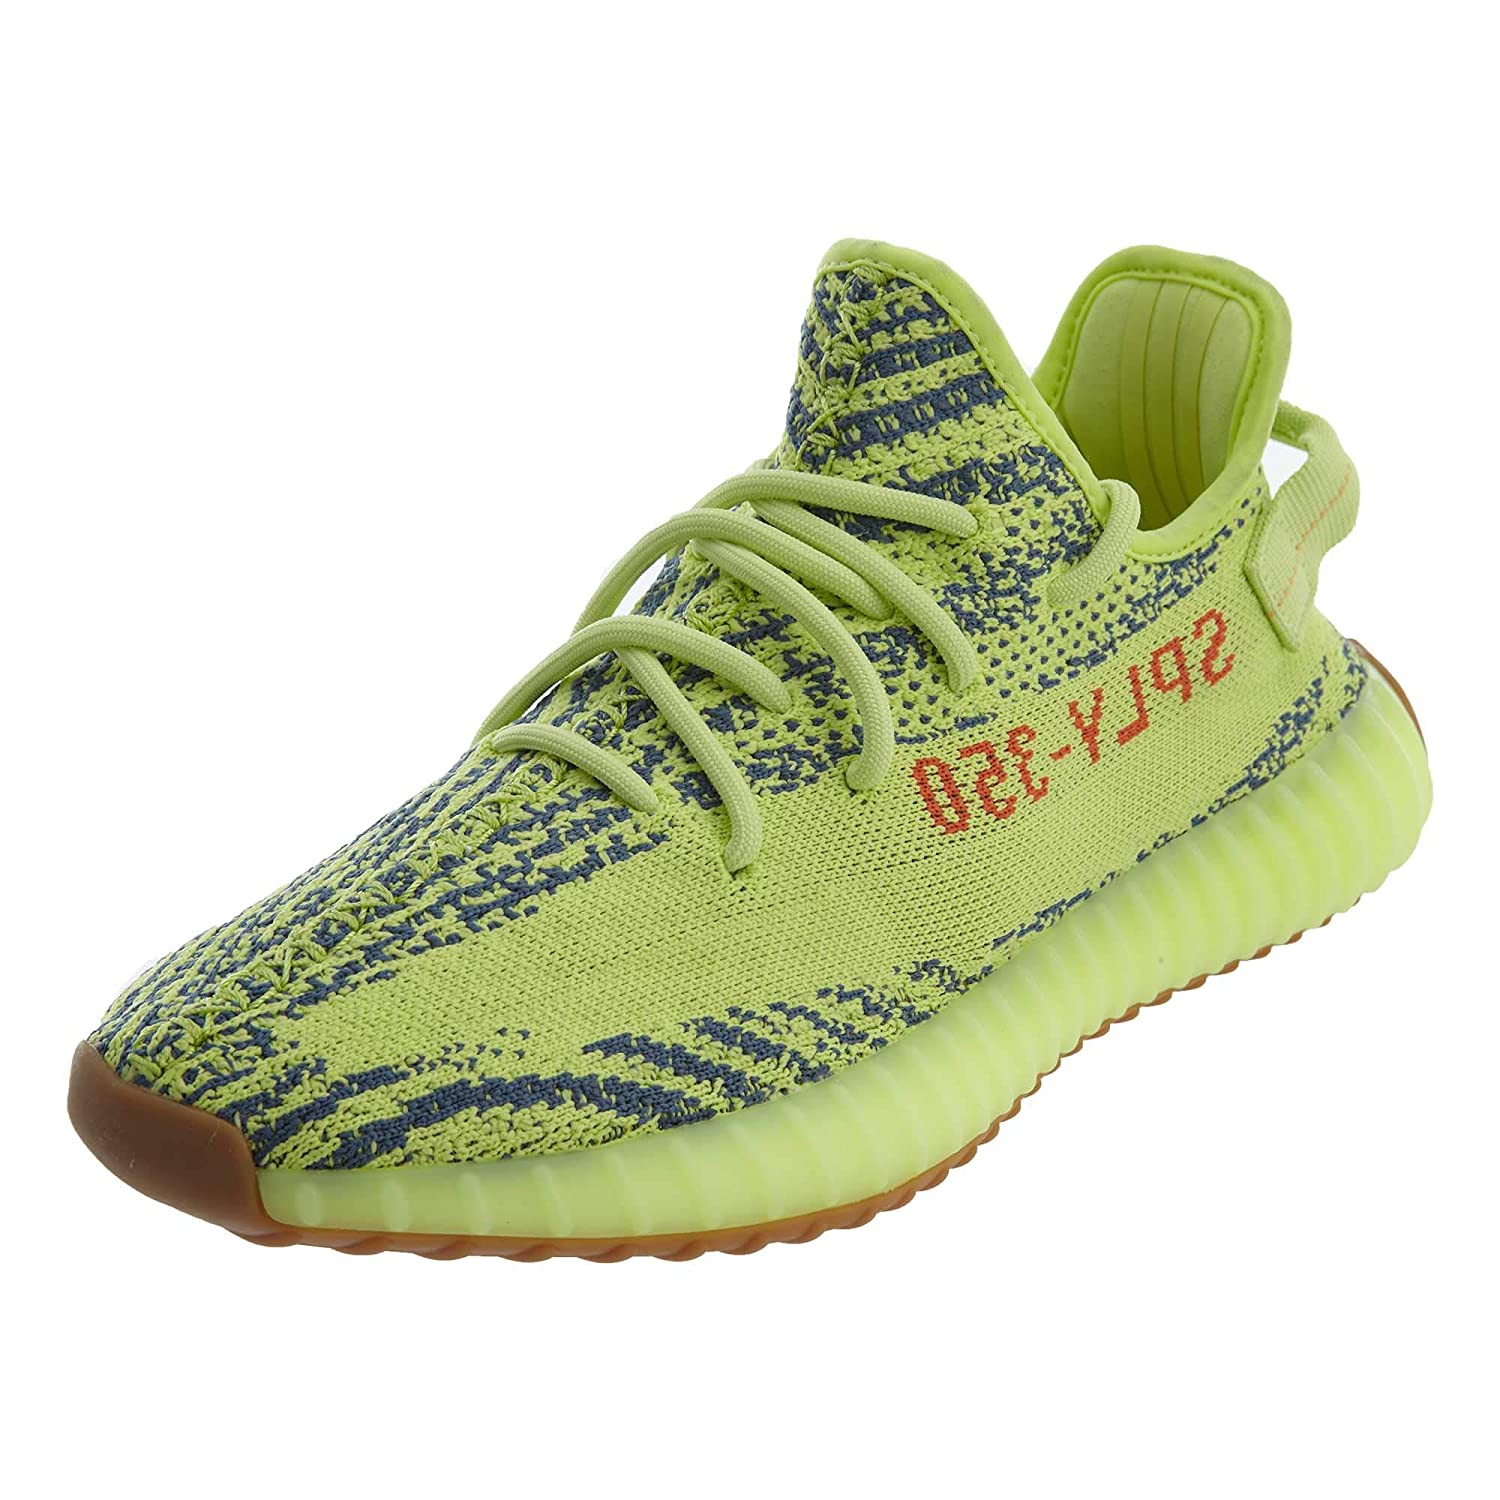 on sale a99f1 77cd9 adidas Yeezy Boost 350 V2 Frozen Yellow - B37572